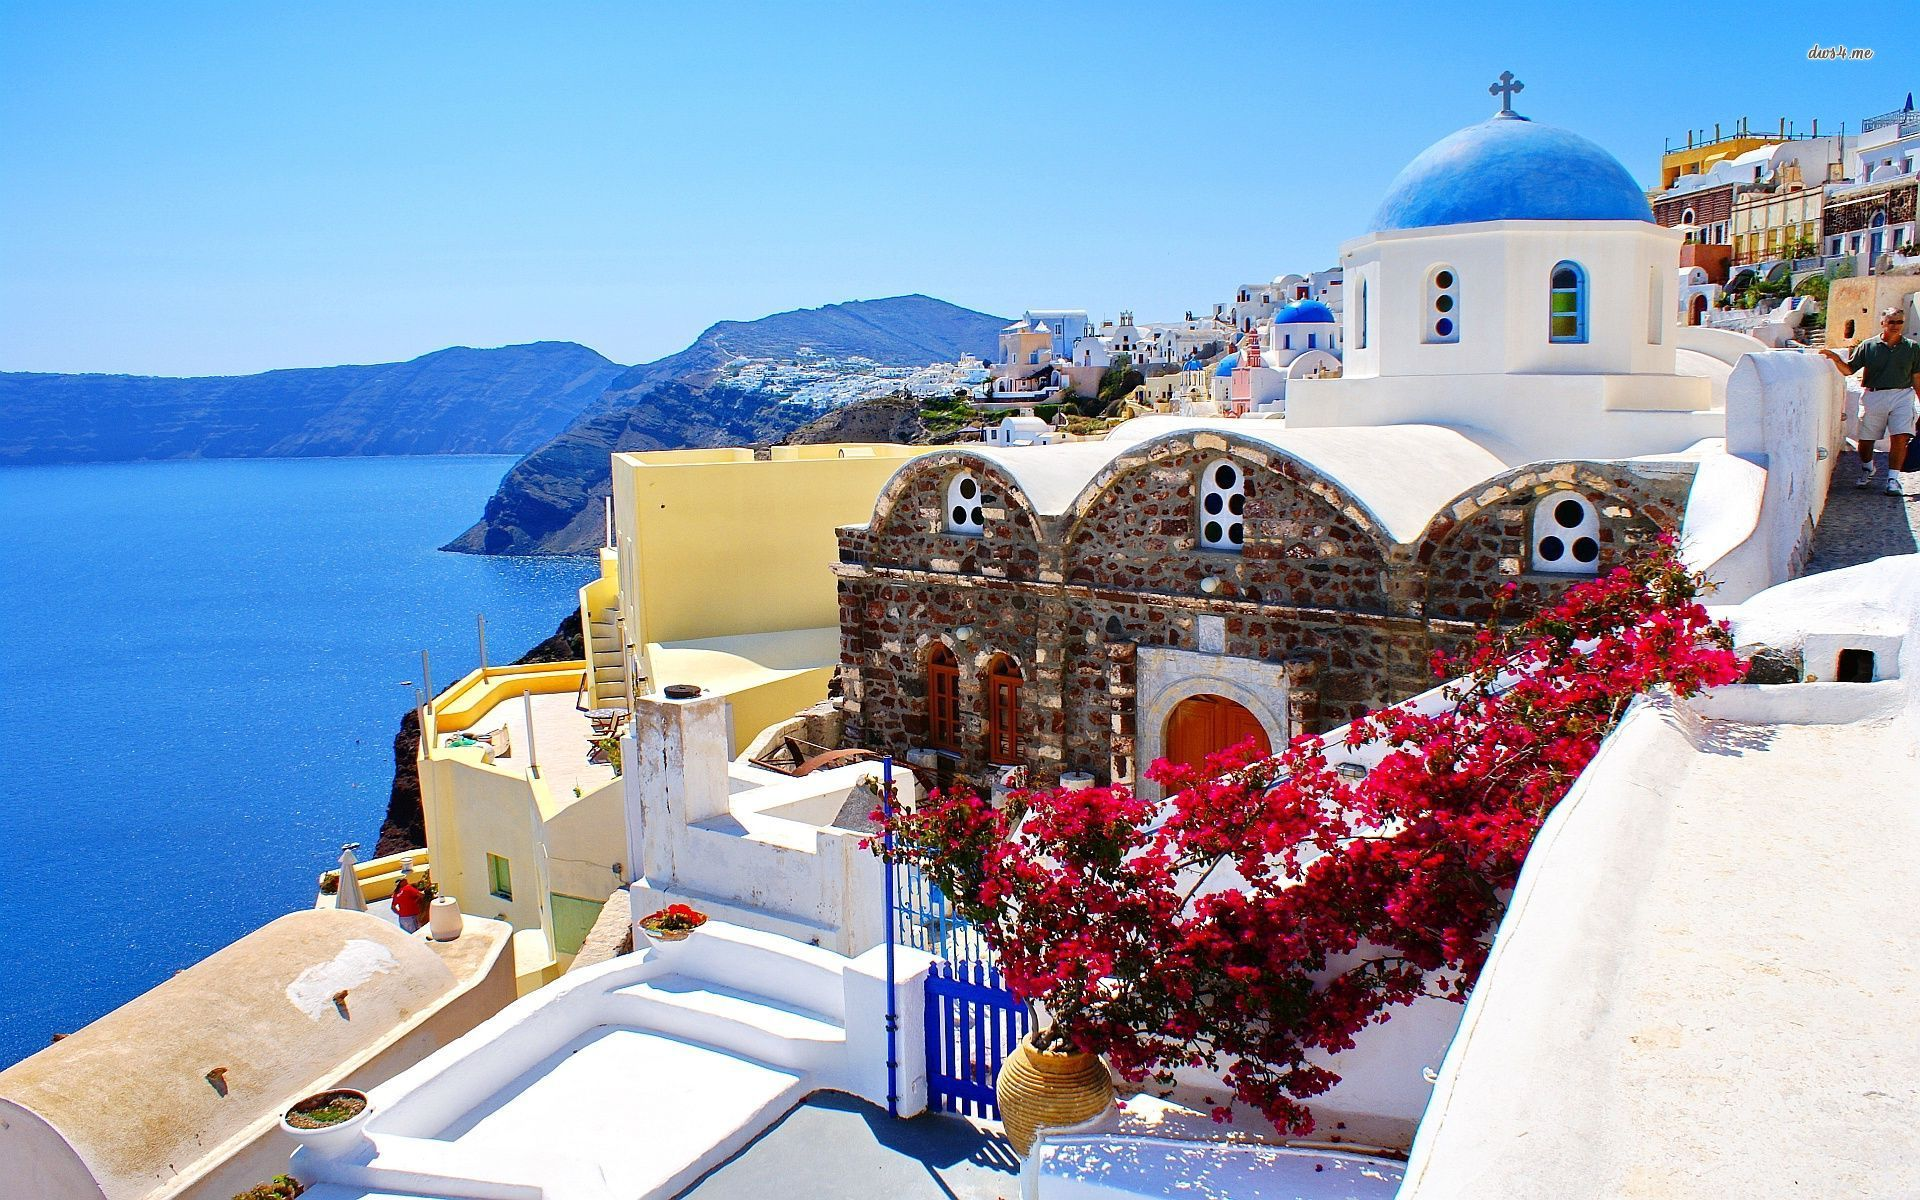 Santorini Wallpapers   915KG17   4USkY 1920x1200